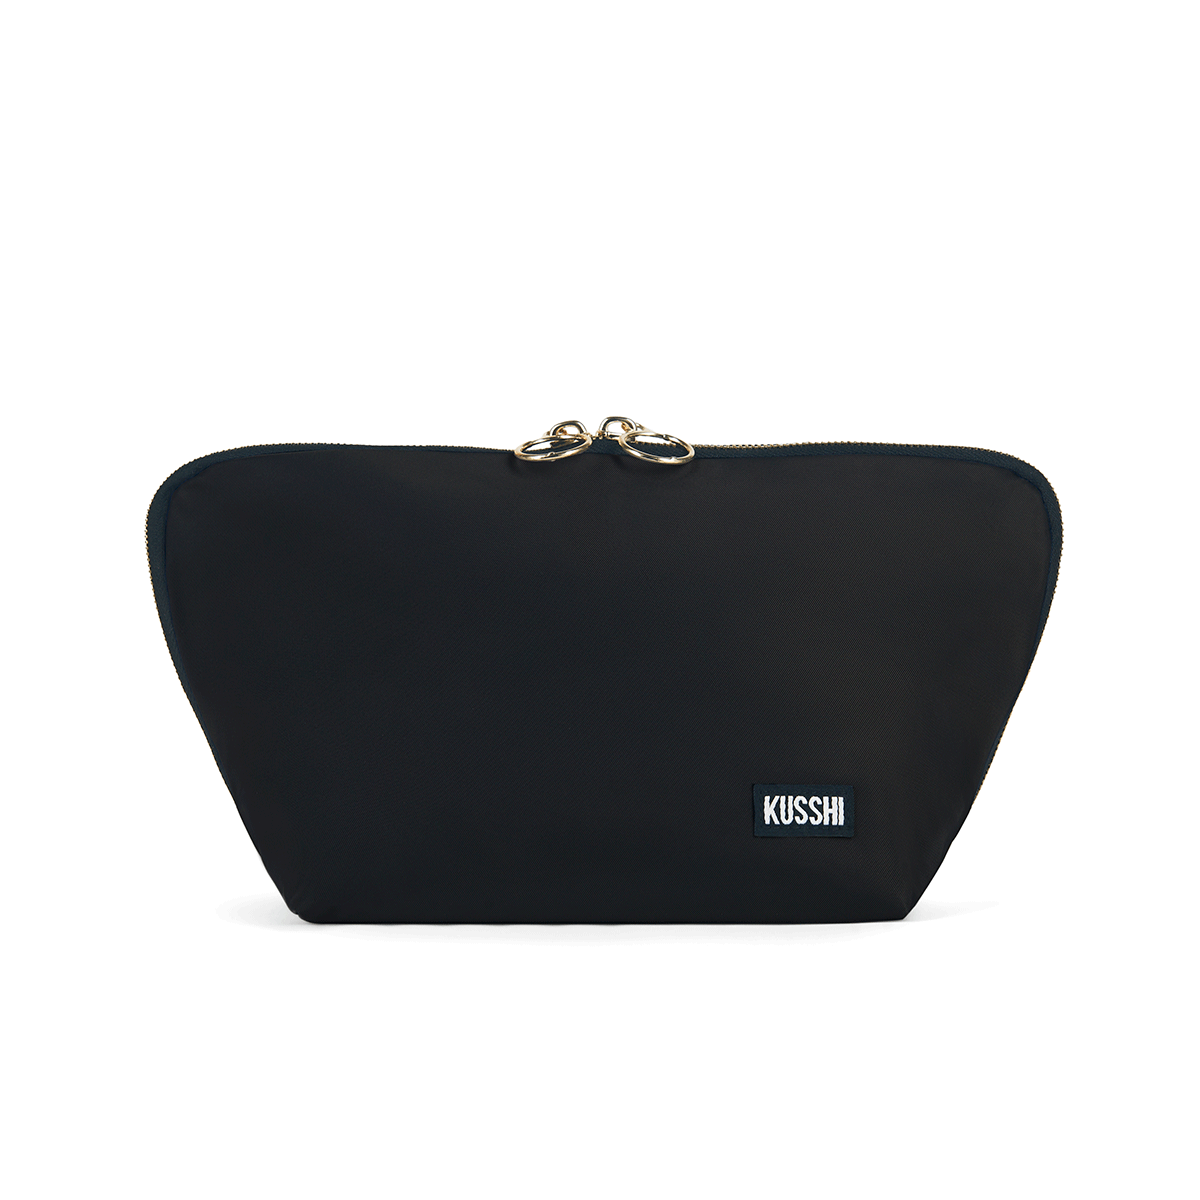 color: Satin Black Fabric with Red Interior; alt: Signature Medium Size Makeup Bag | KUSSHI